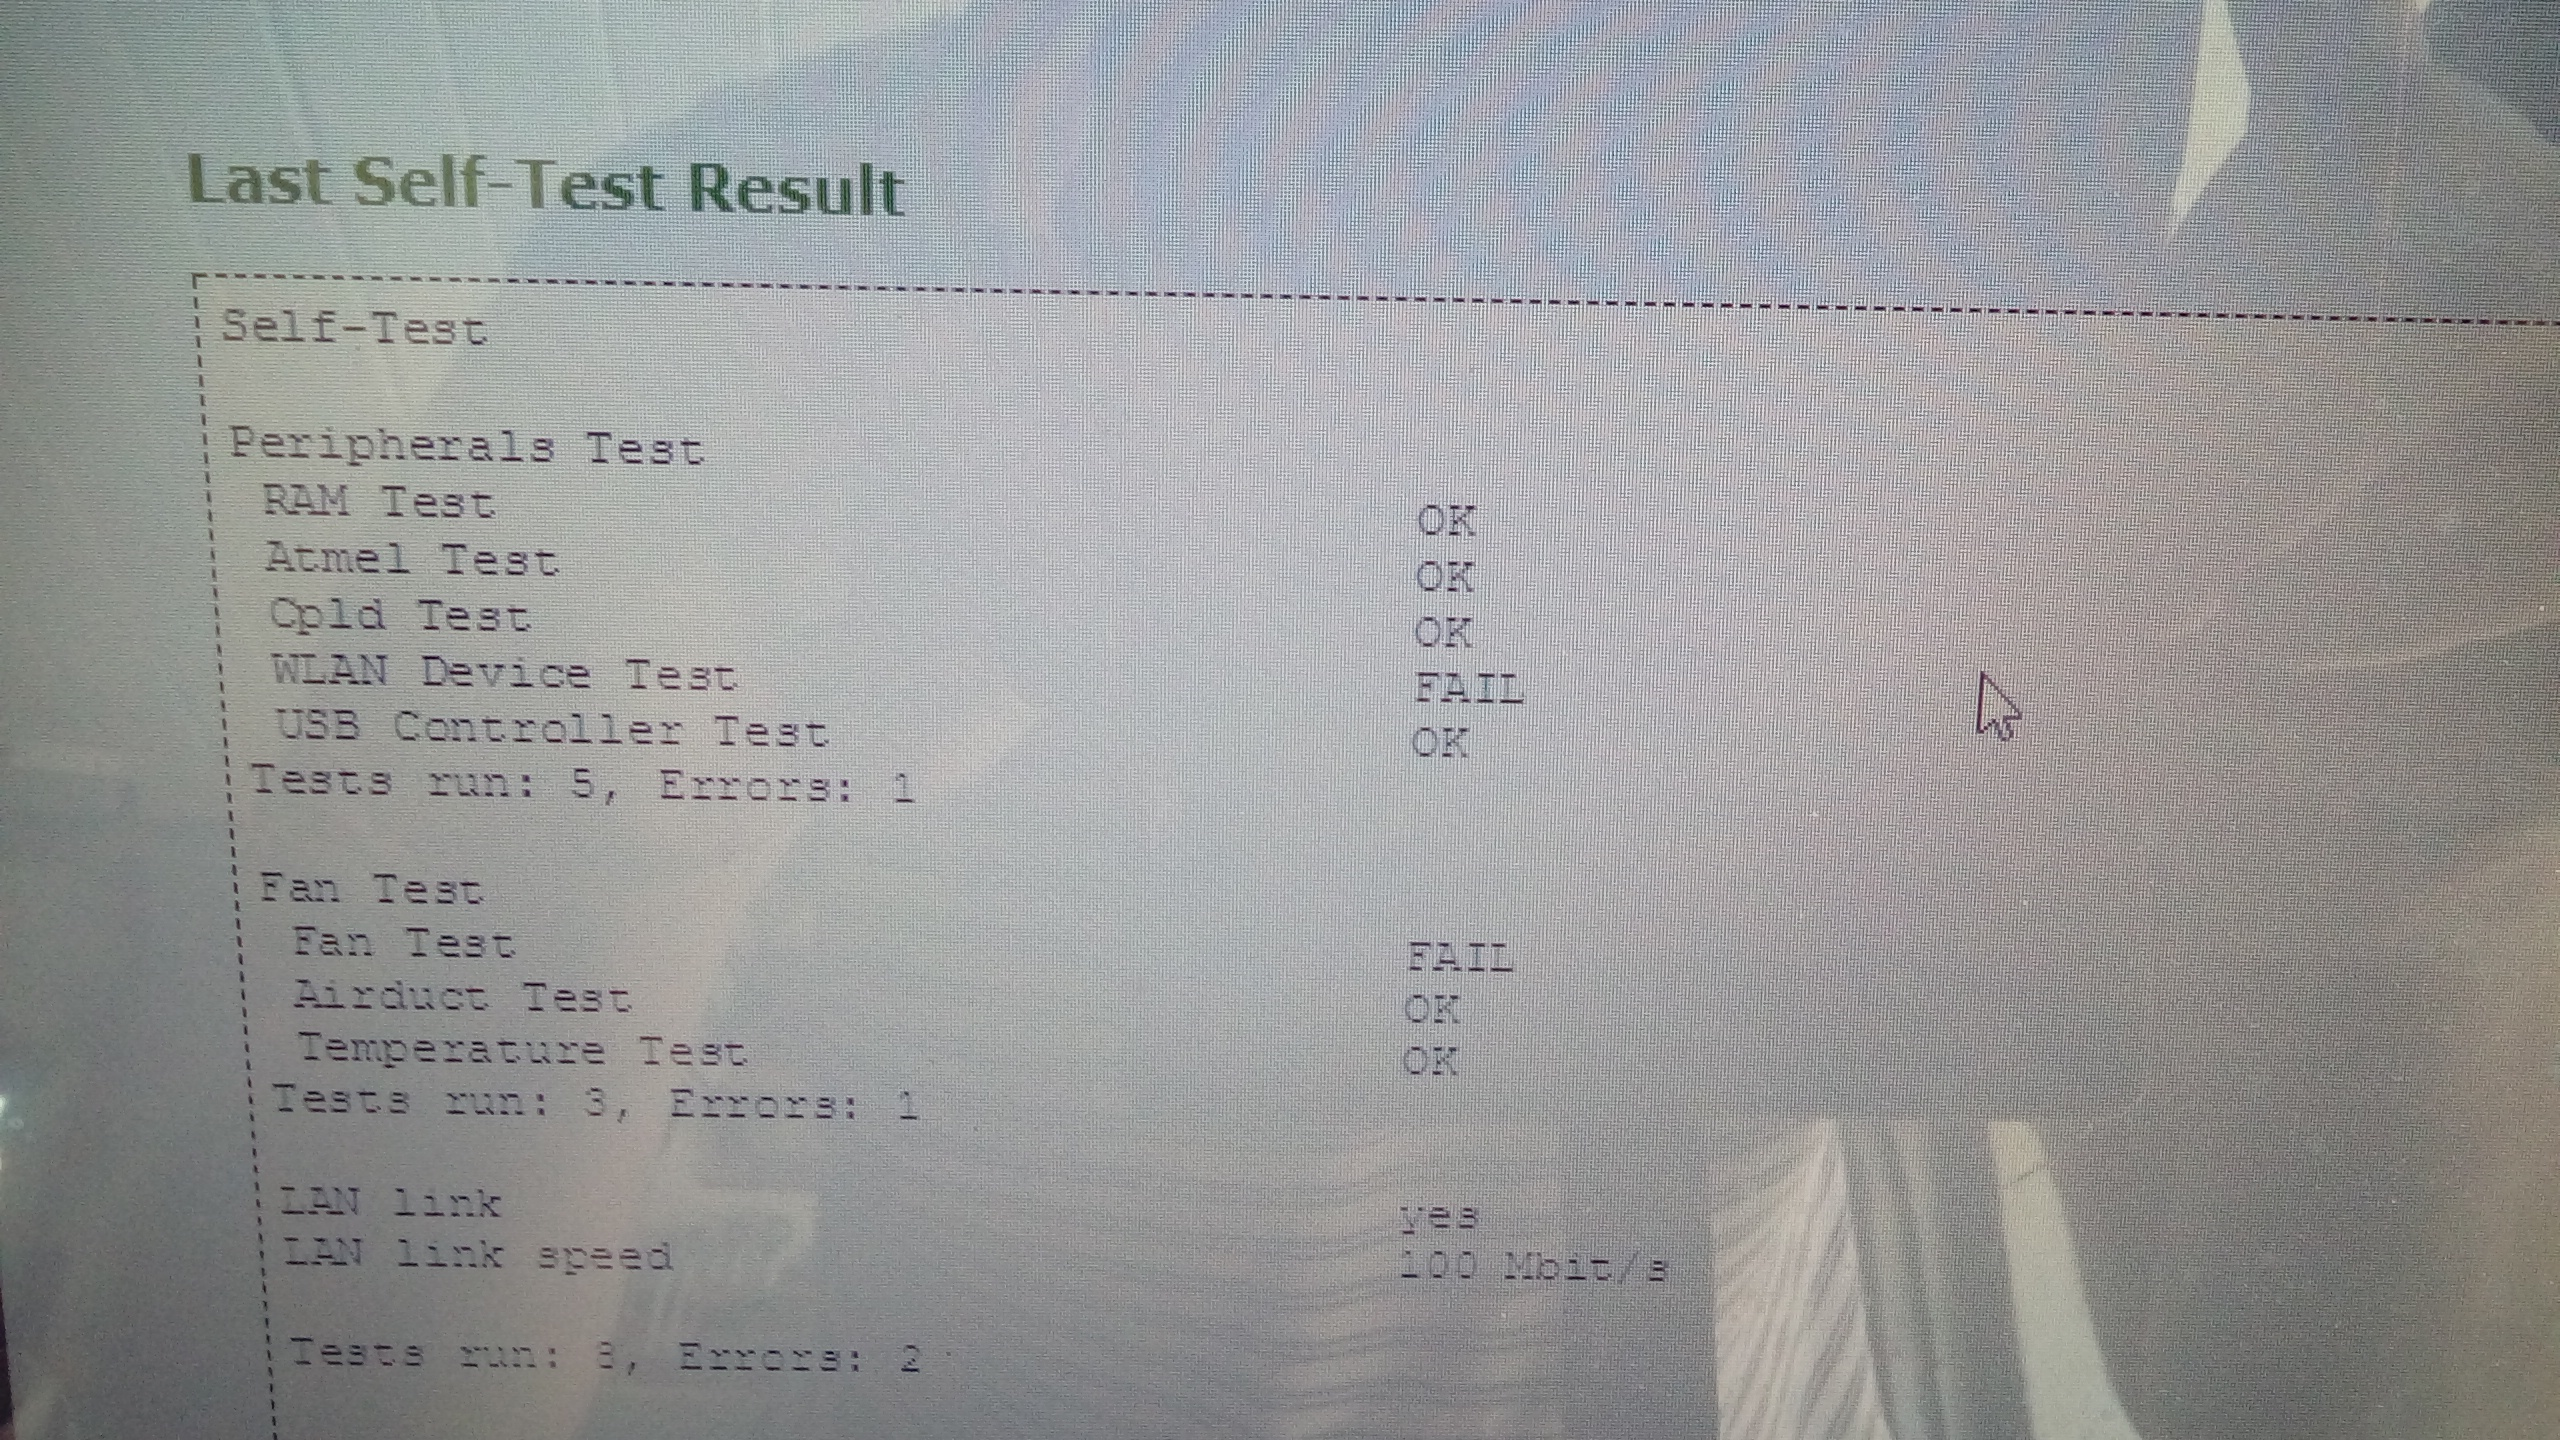 icom-next-self-test-results-05